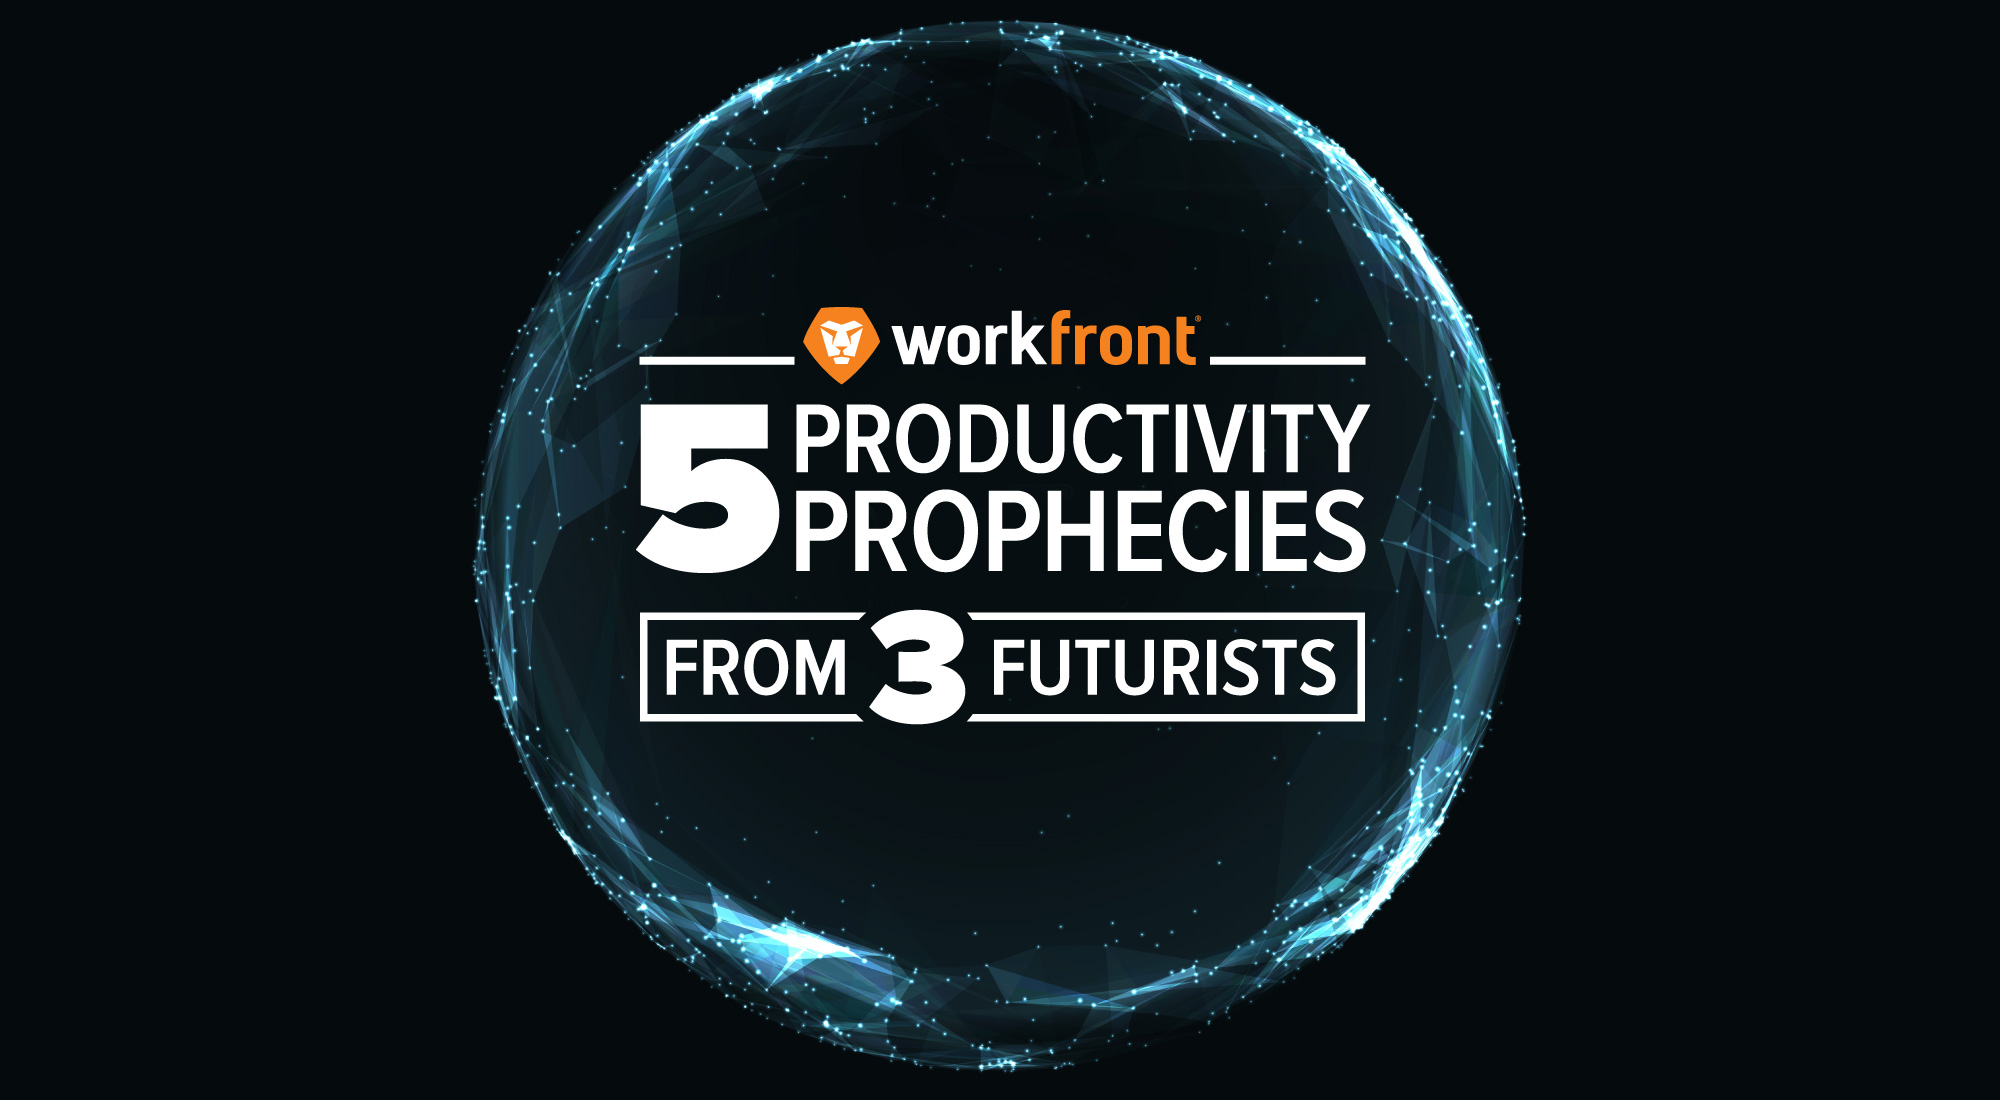 5 Productivity Prophecies From 3 Futurists